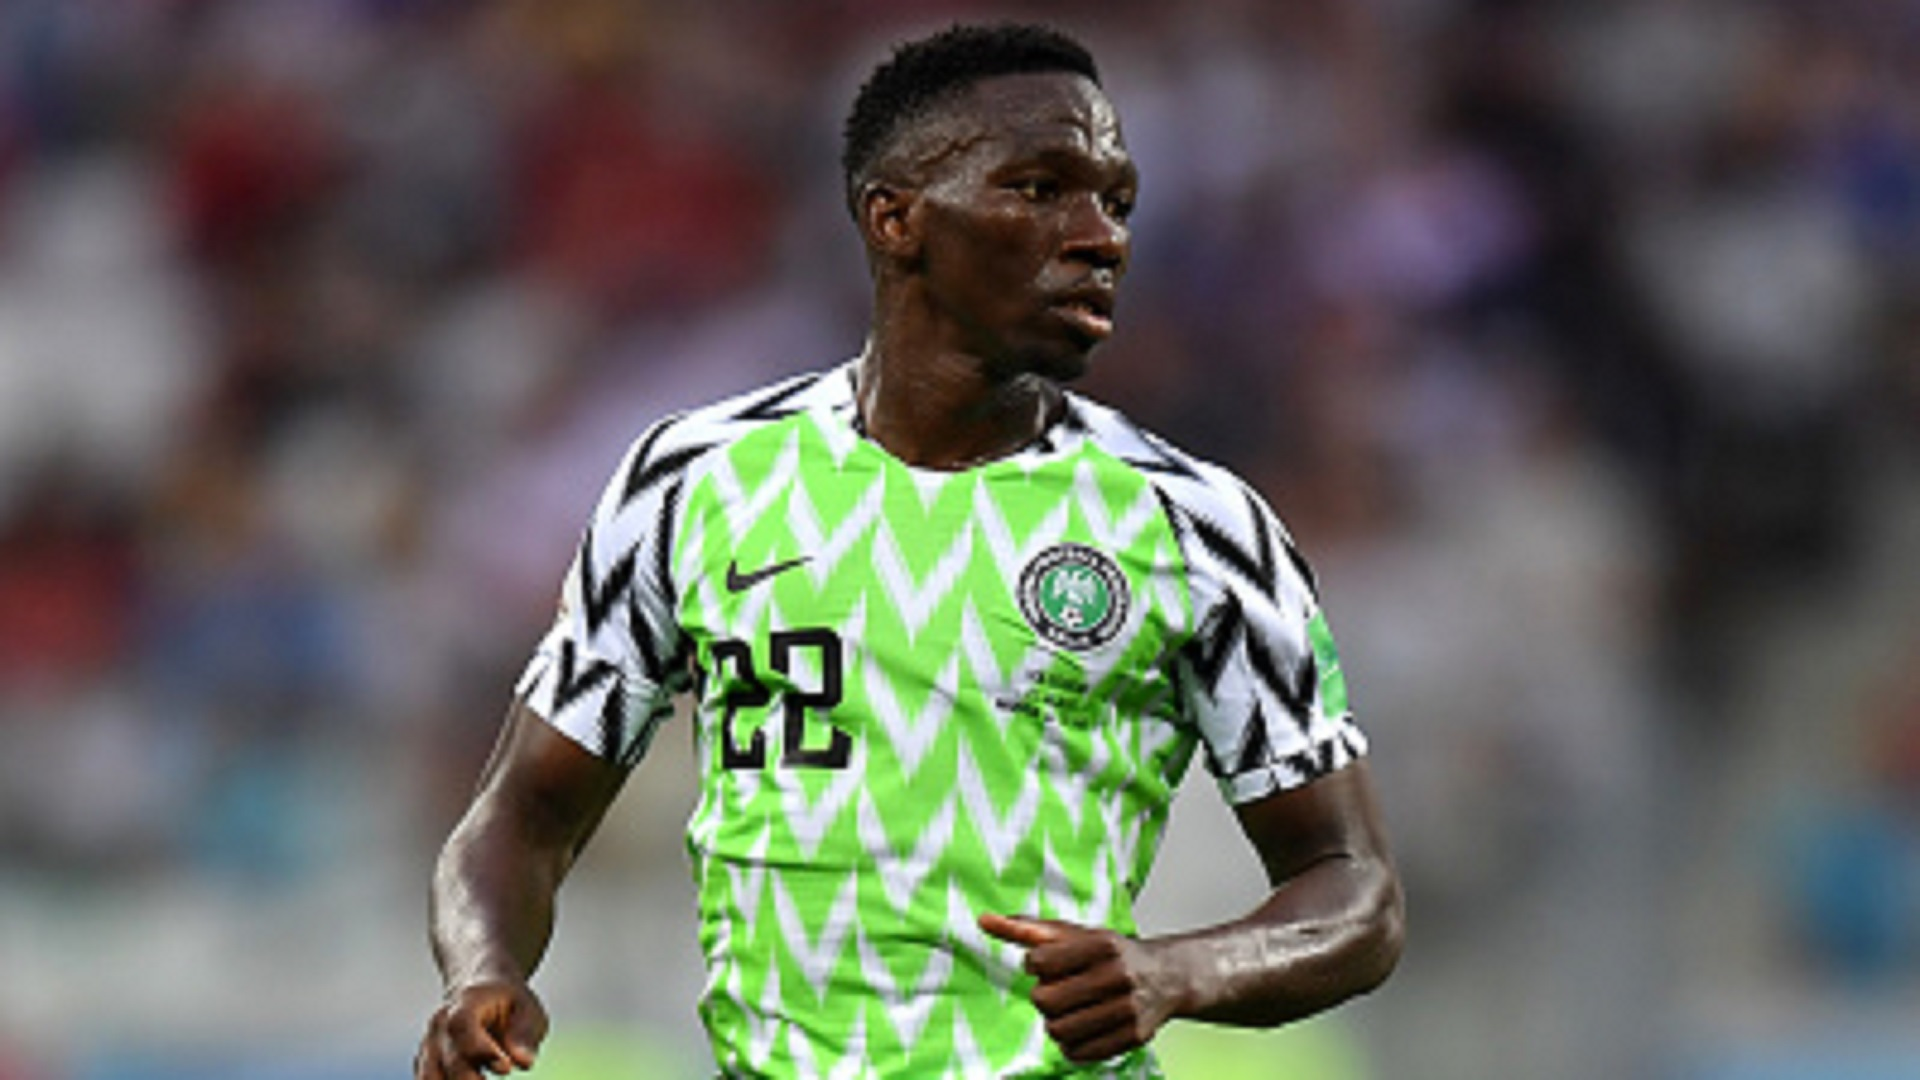 Gernot Rohr allows Kenneth Omeruo to leave Eagles camp to be with pregnant wife